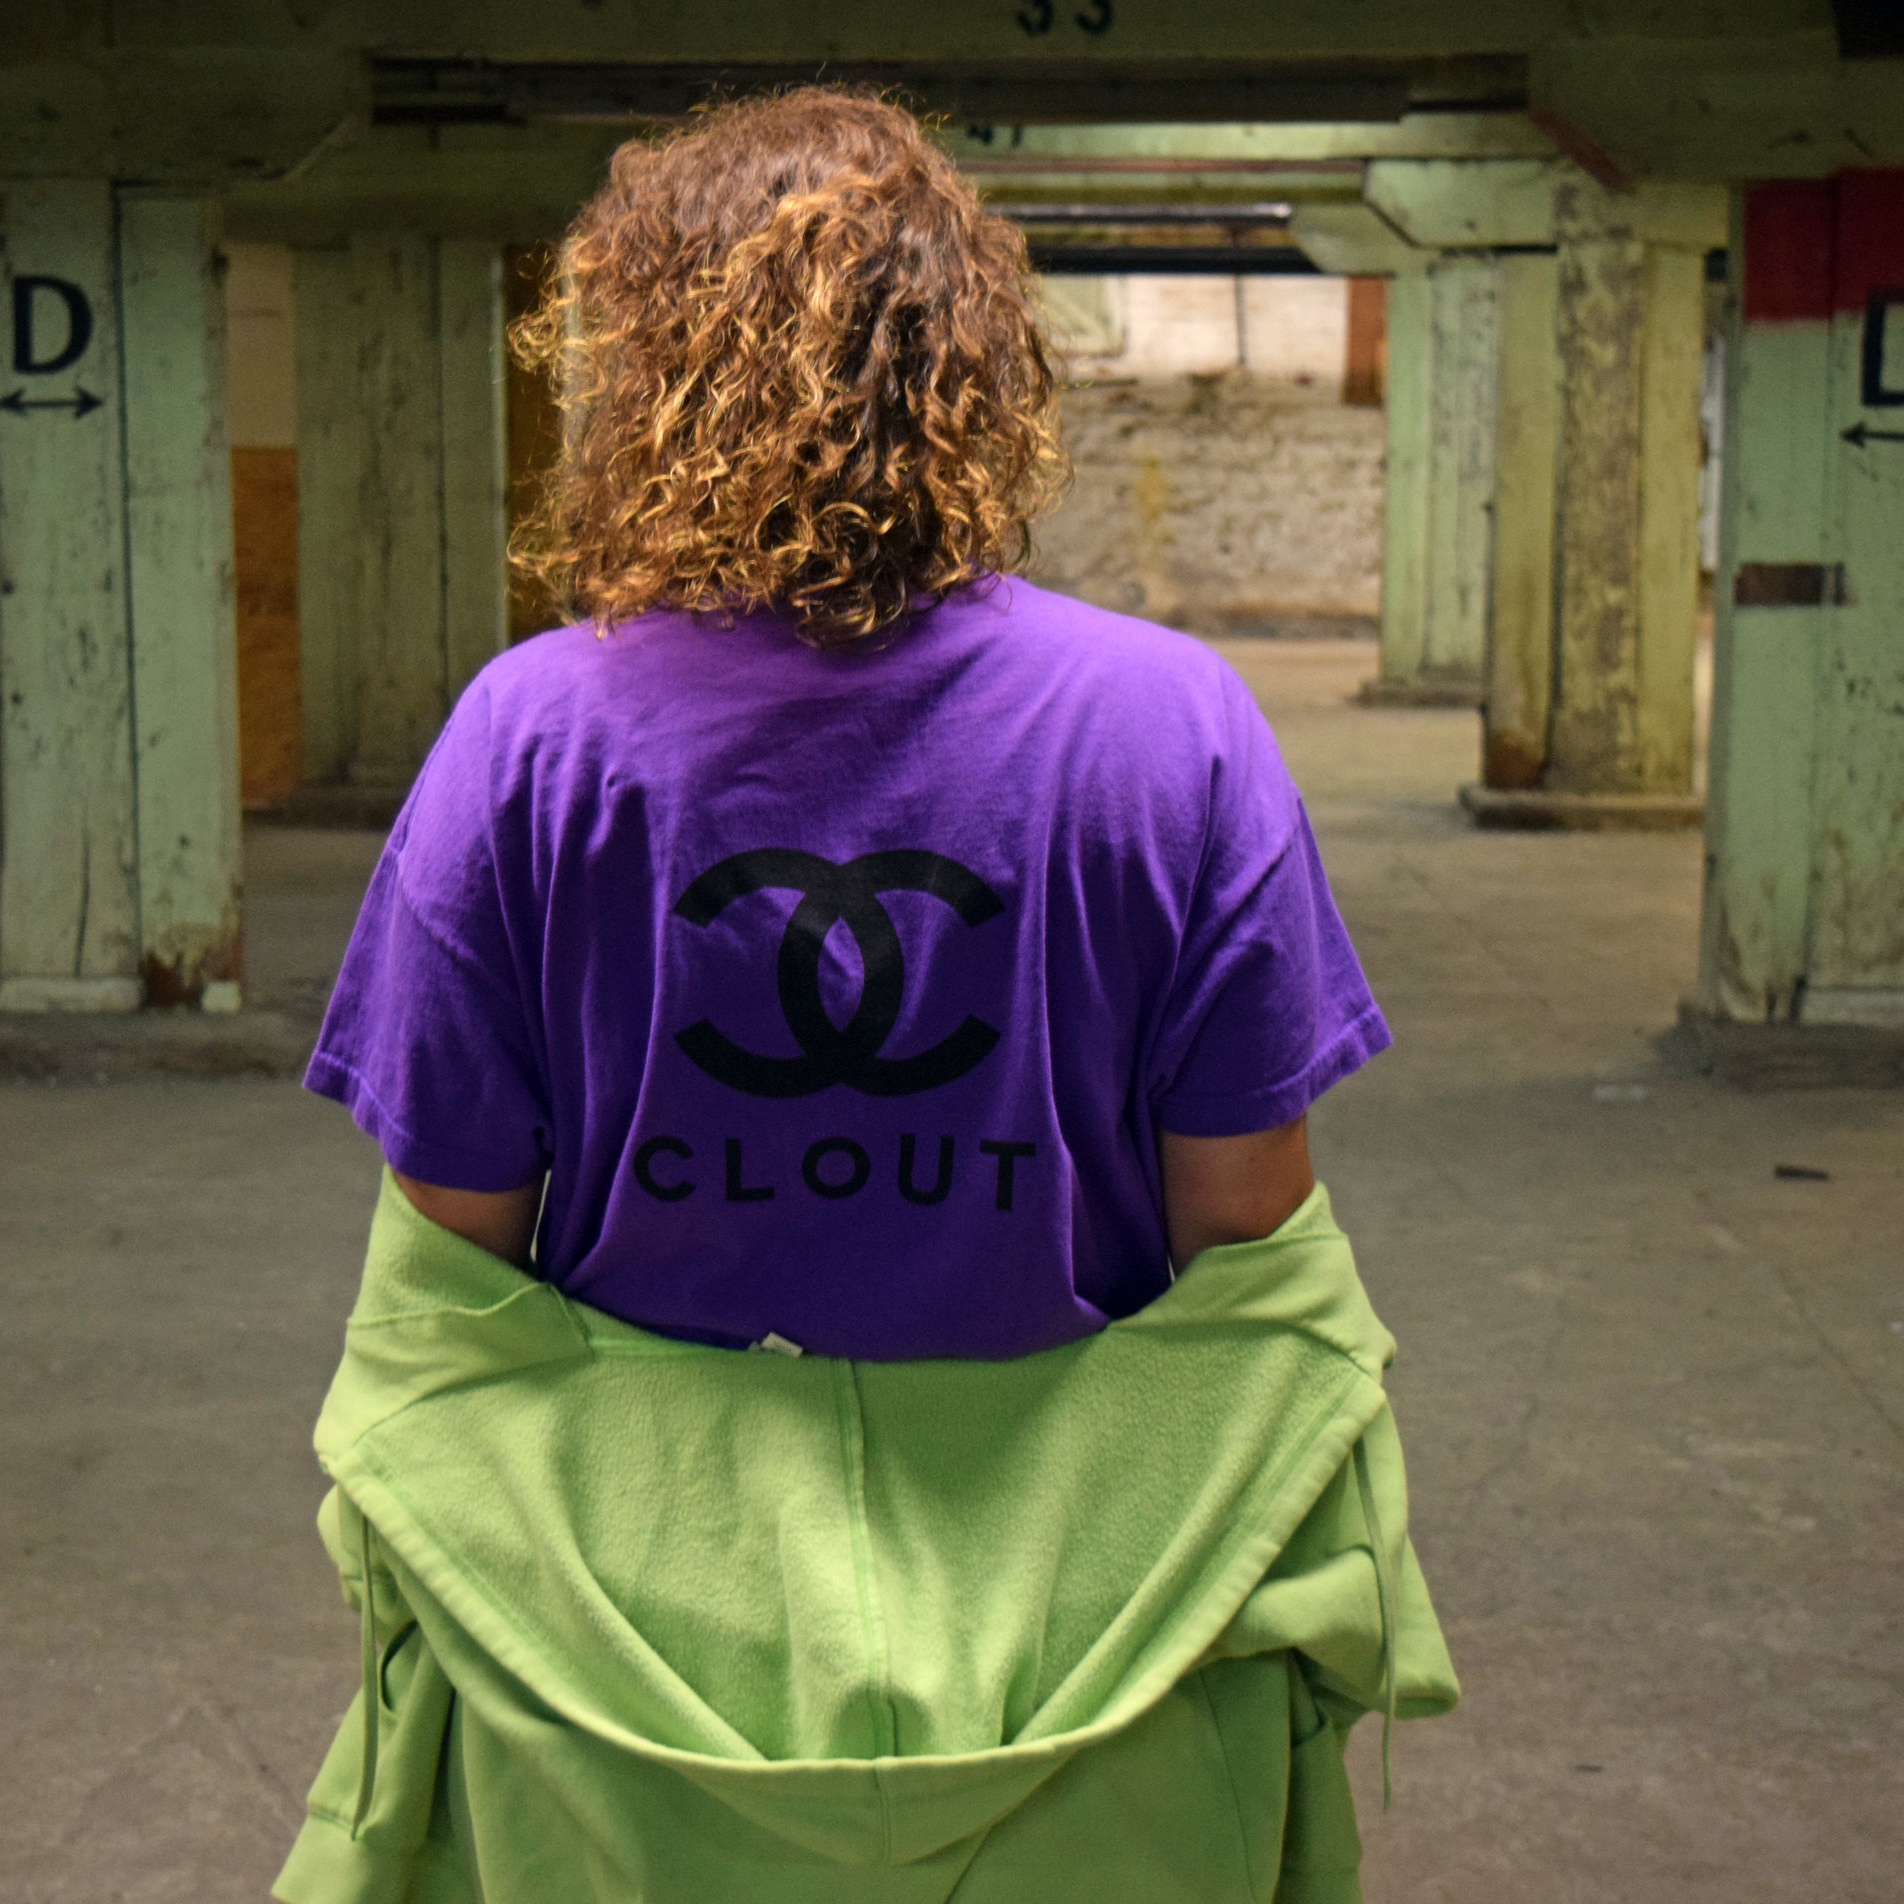 This Rue look is brought together with this oversized purple looney toons up cycled clout tee.